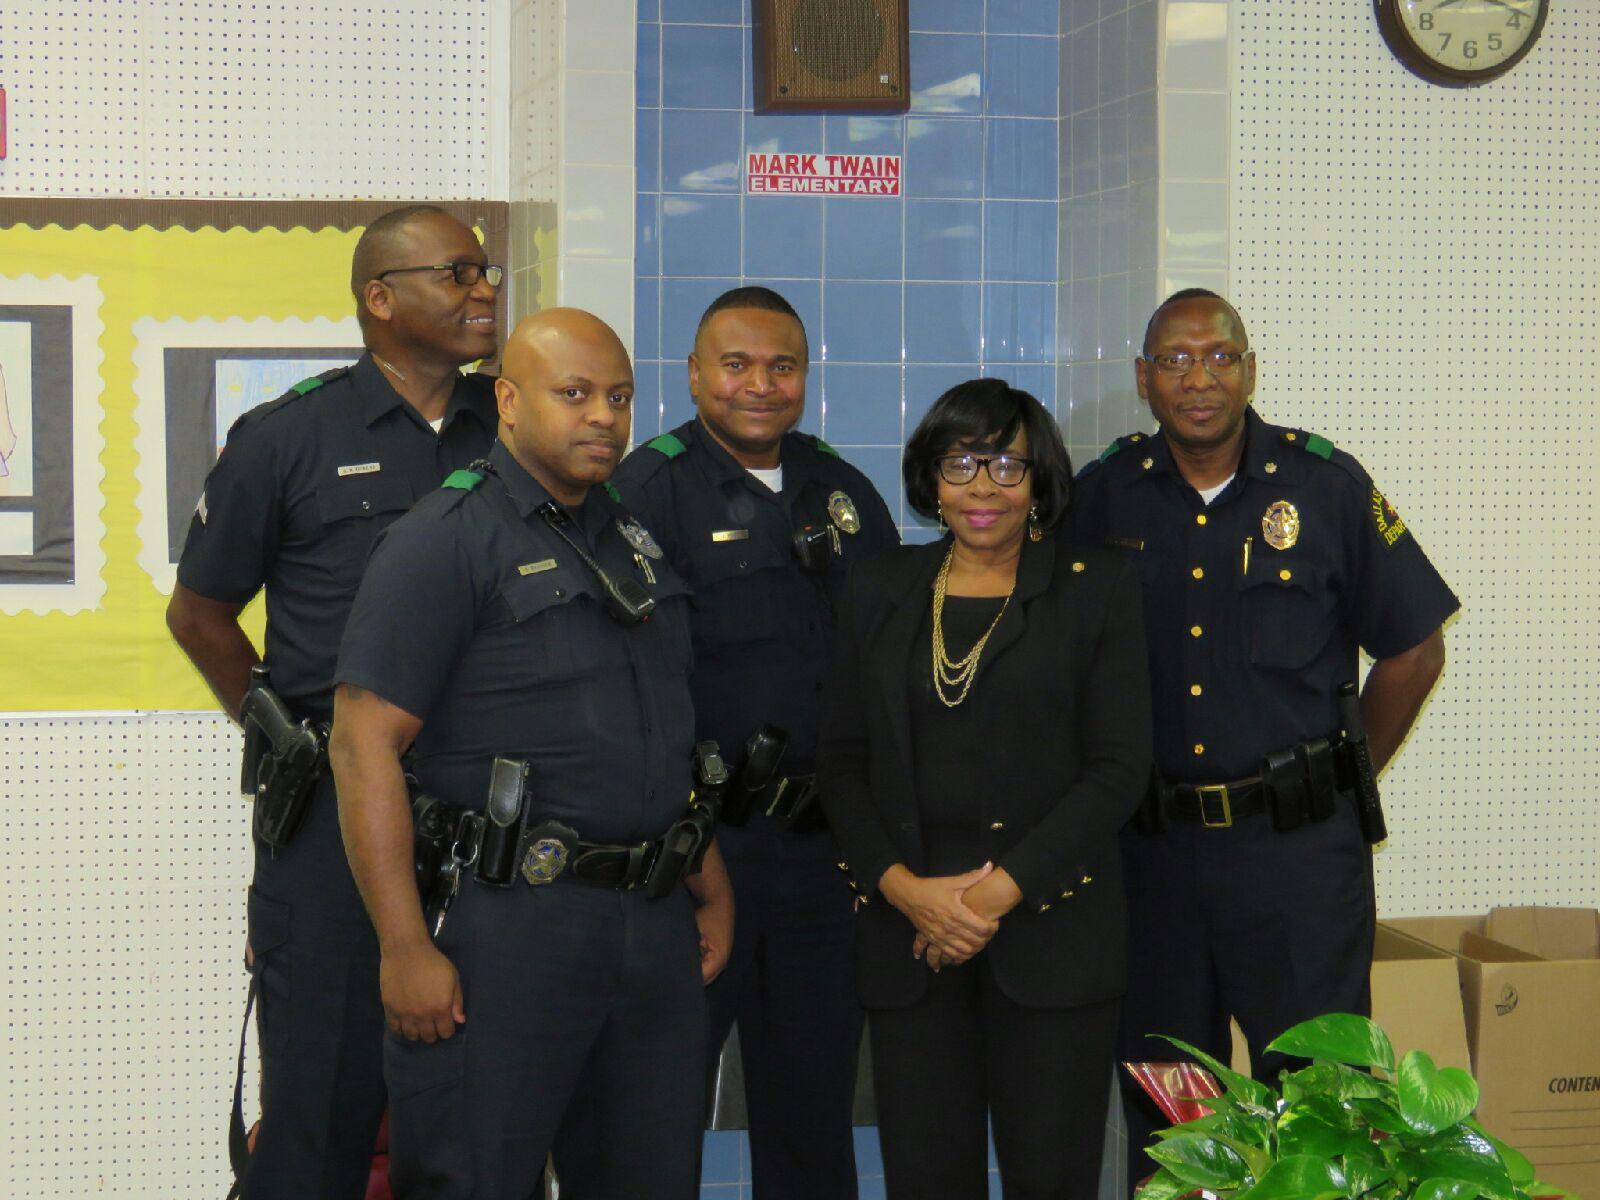 Members of the South Central Neighborhood Police Office.jpg